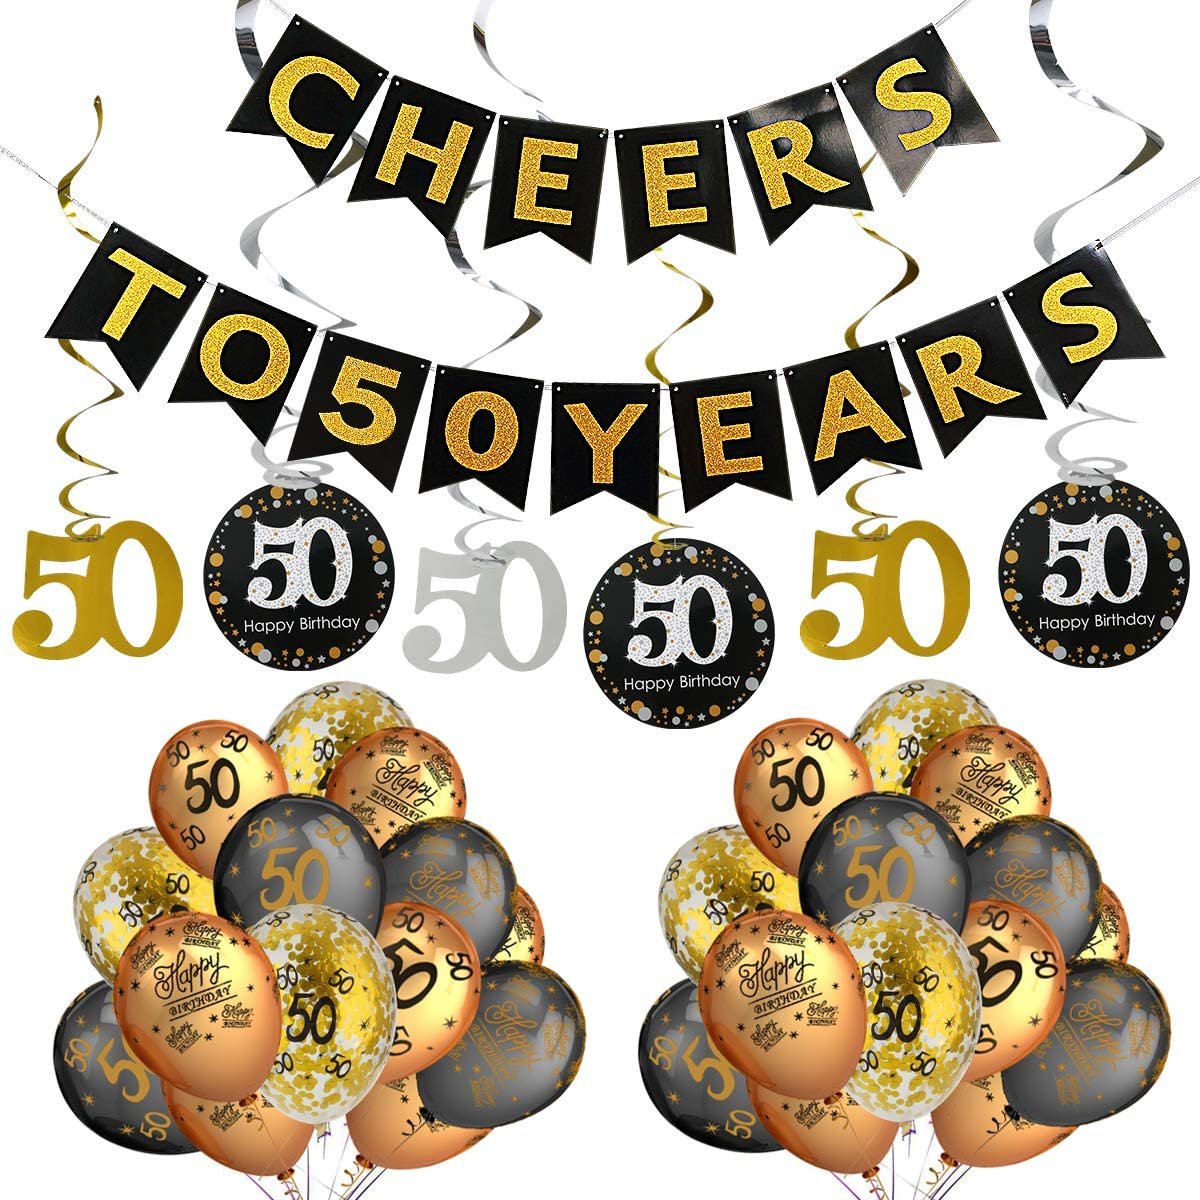 50th Birthday Party Decorations Kit- Cheers to 50 Years Banner,Sparkling Celebration 50 Hanging Swirls,Gold and Black Latex 50 Birthday Balloons,Perfect for 50 Years Old Party Decorations Supplies